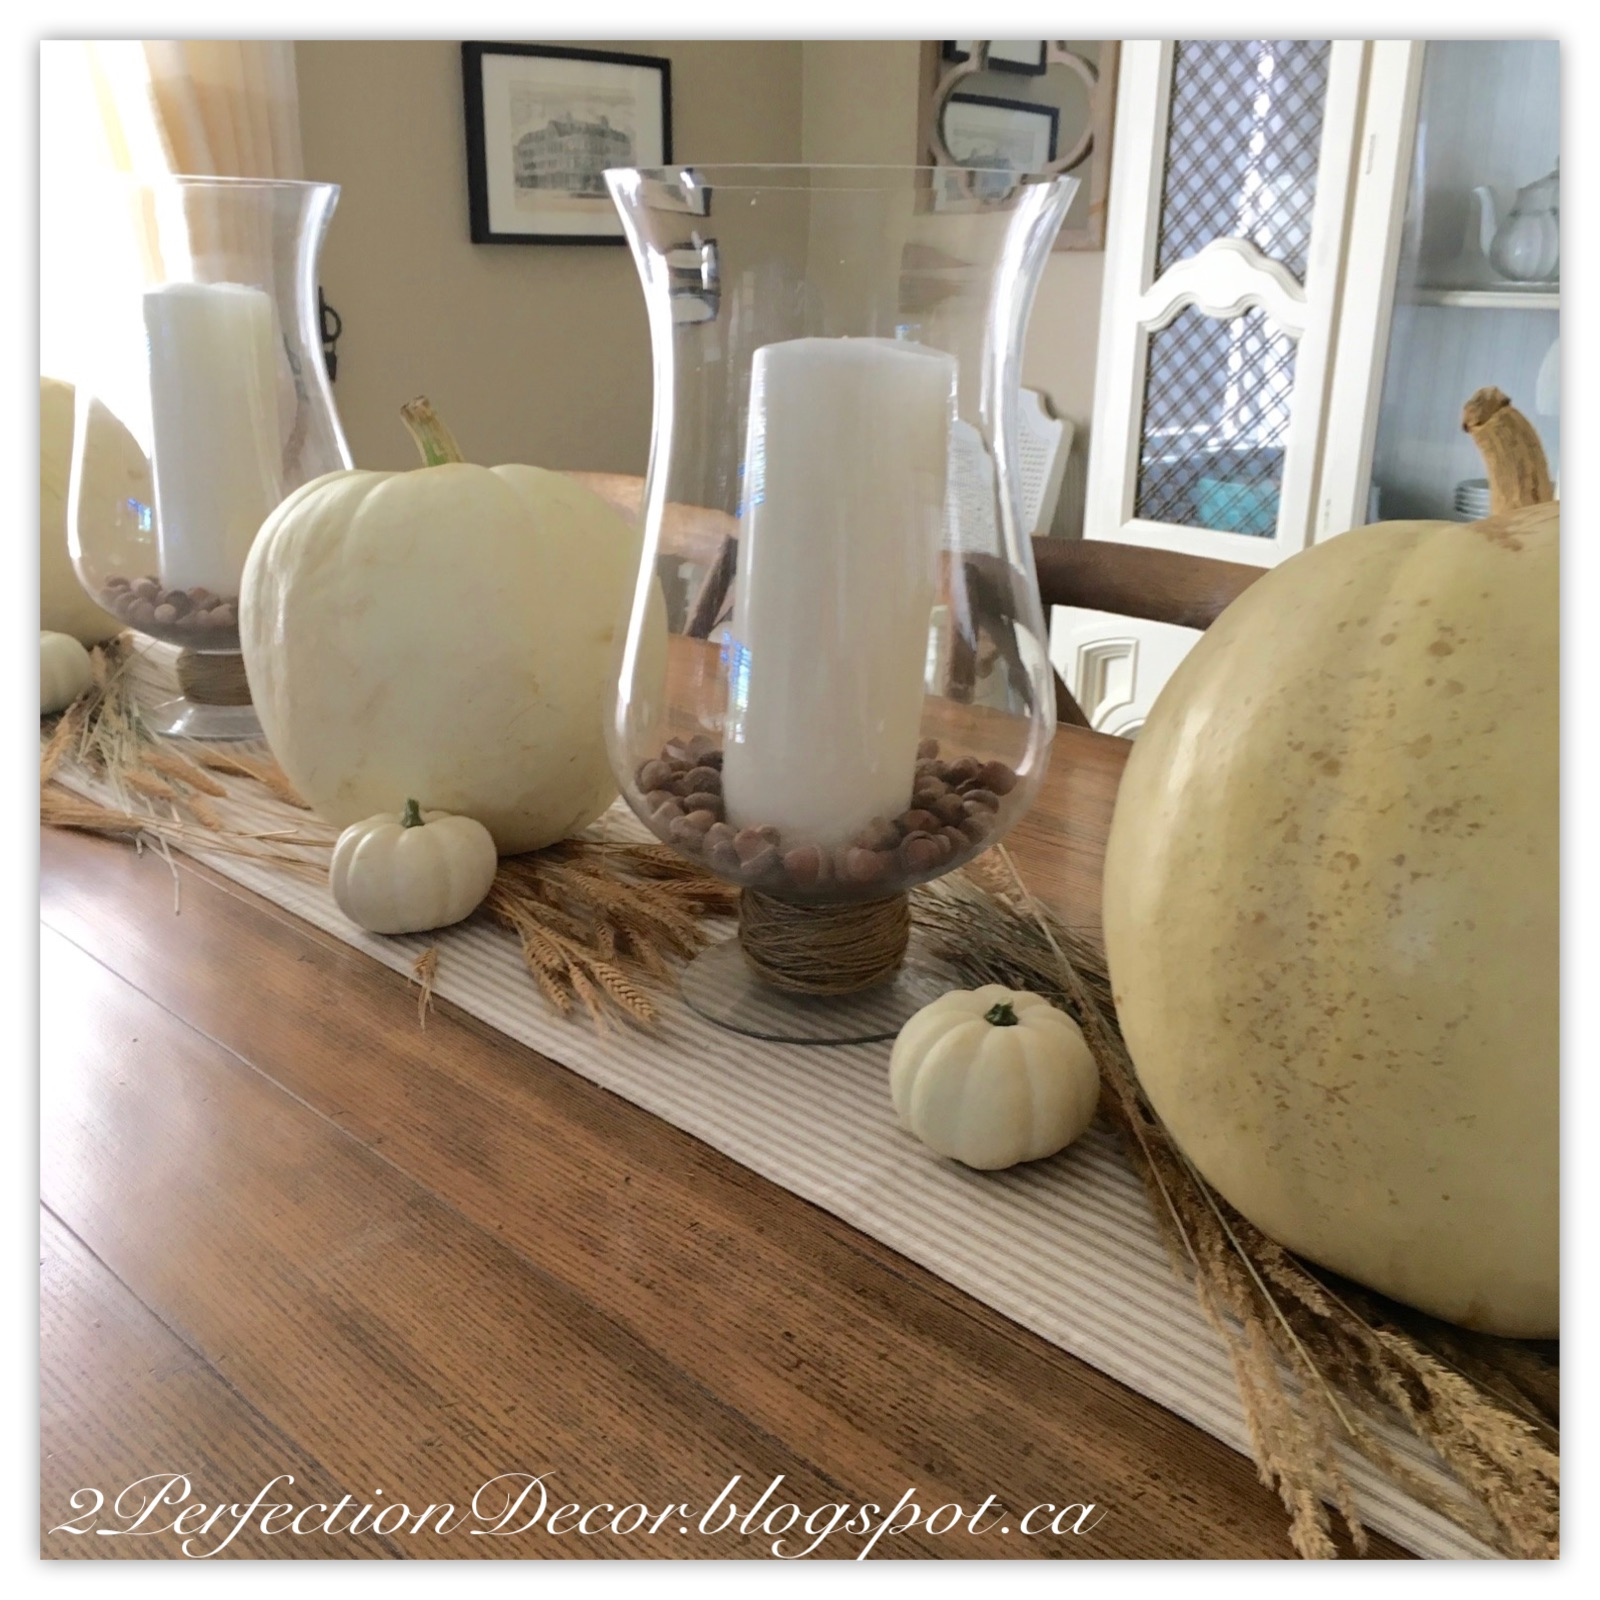 Fall Decorating Ideas For The Dining Room: 2Perfection Decor: Dining Room Decorated For Fall